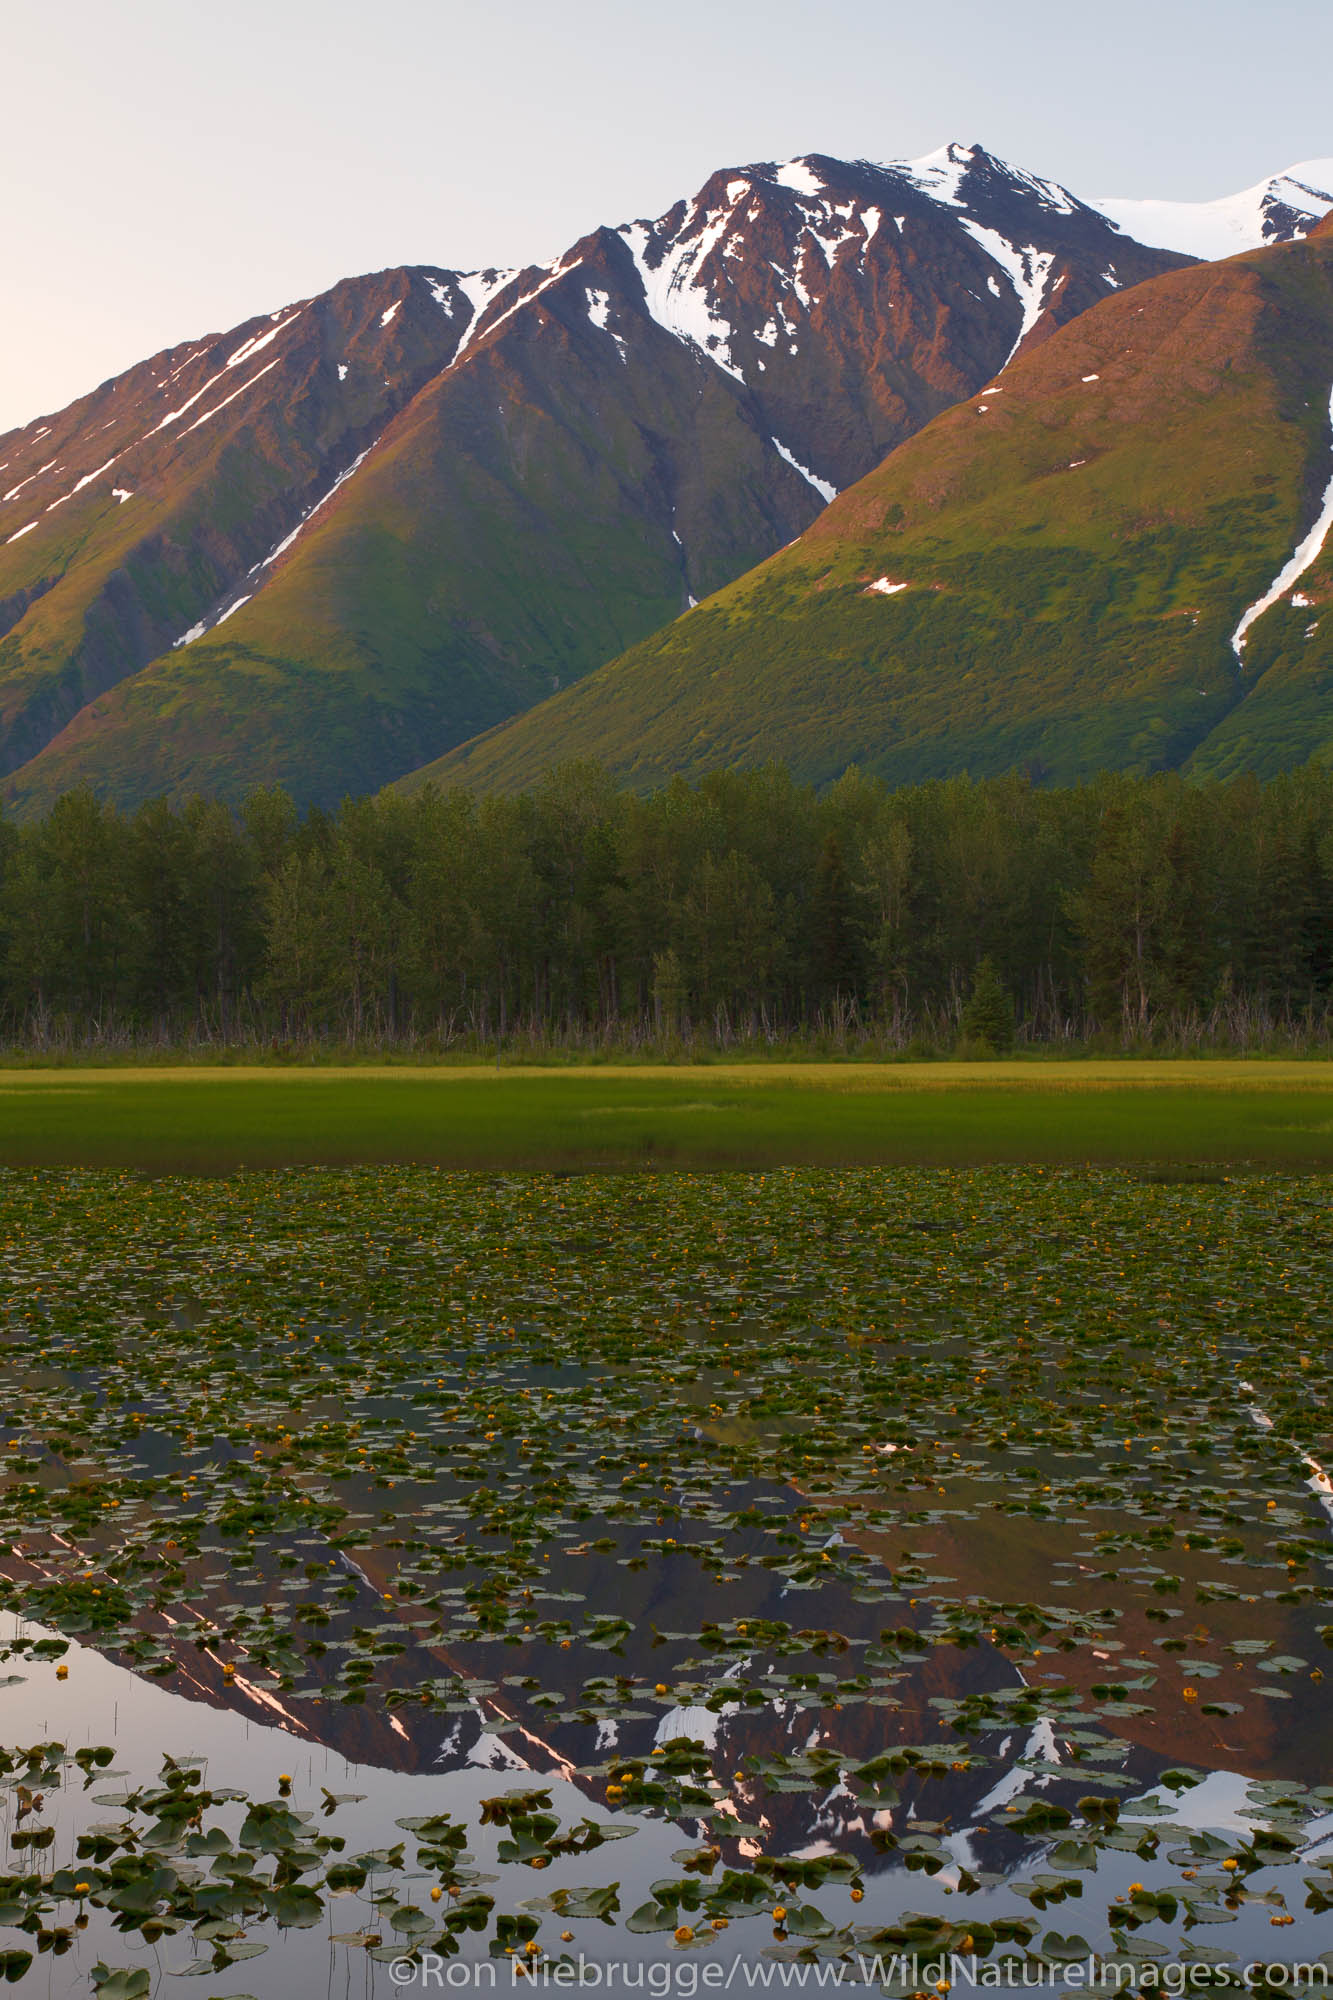 A lily pond in the Chugach National Forest, Alaska.